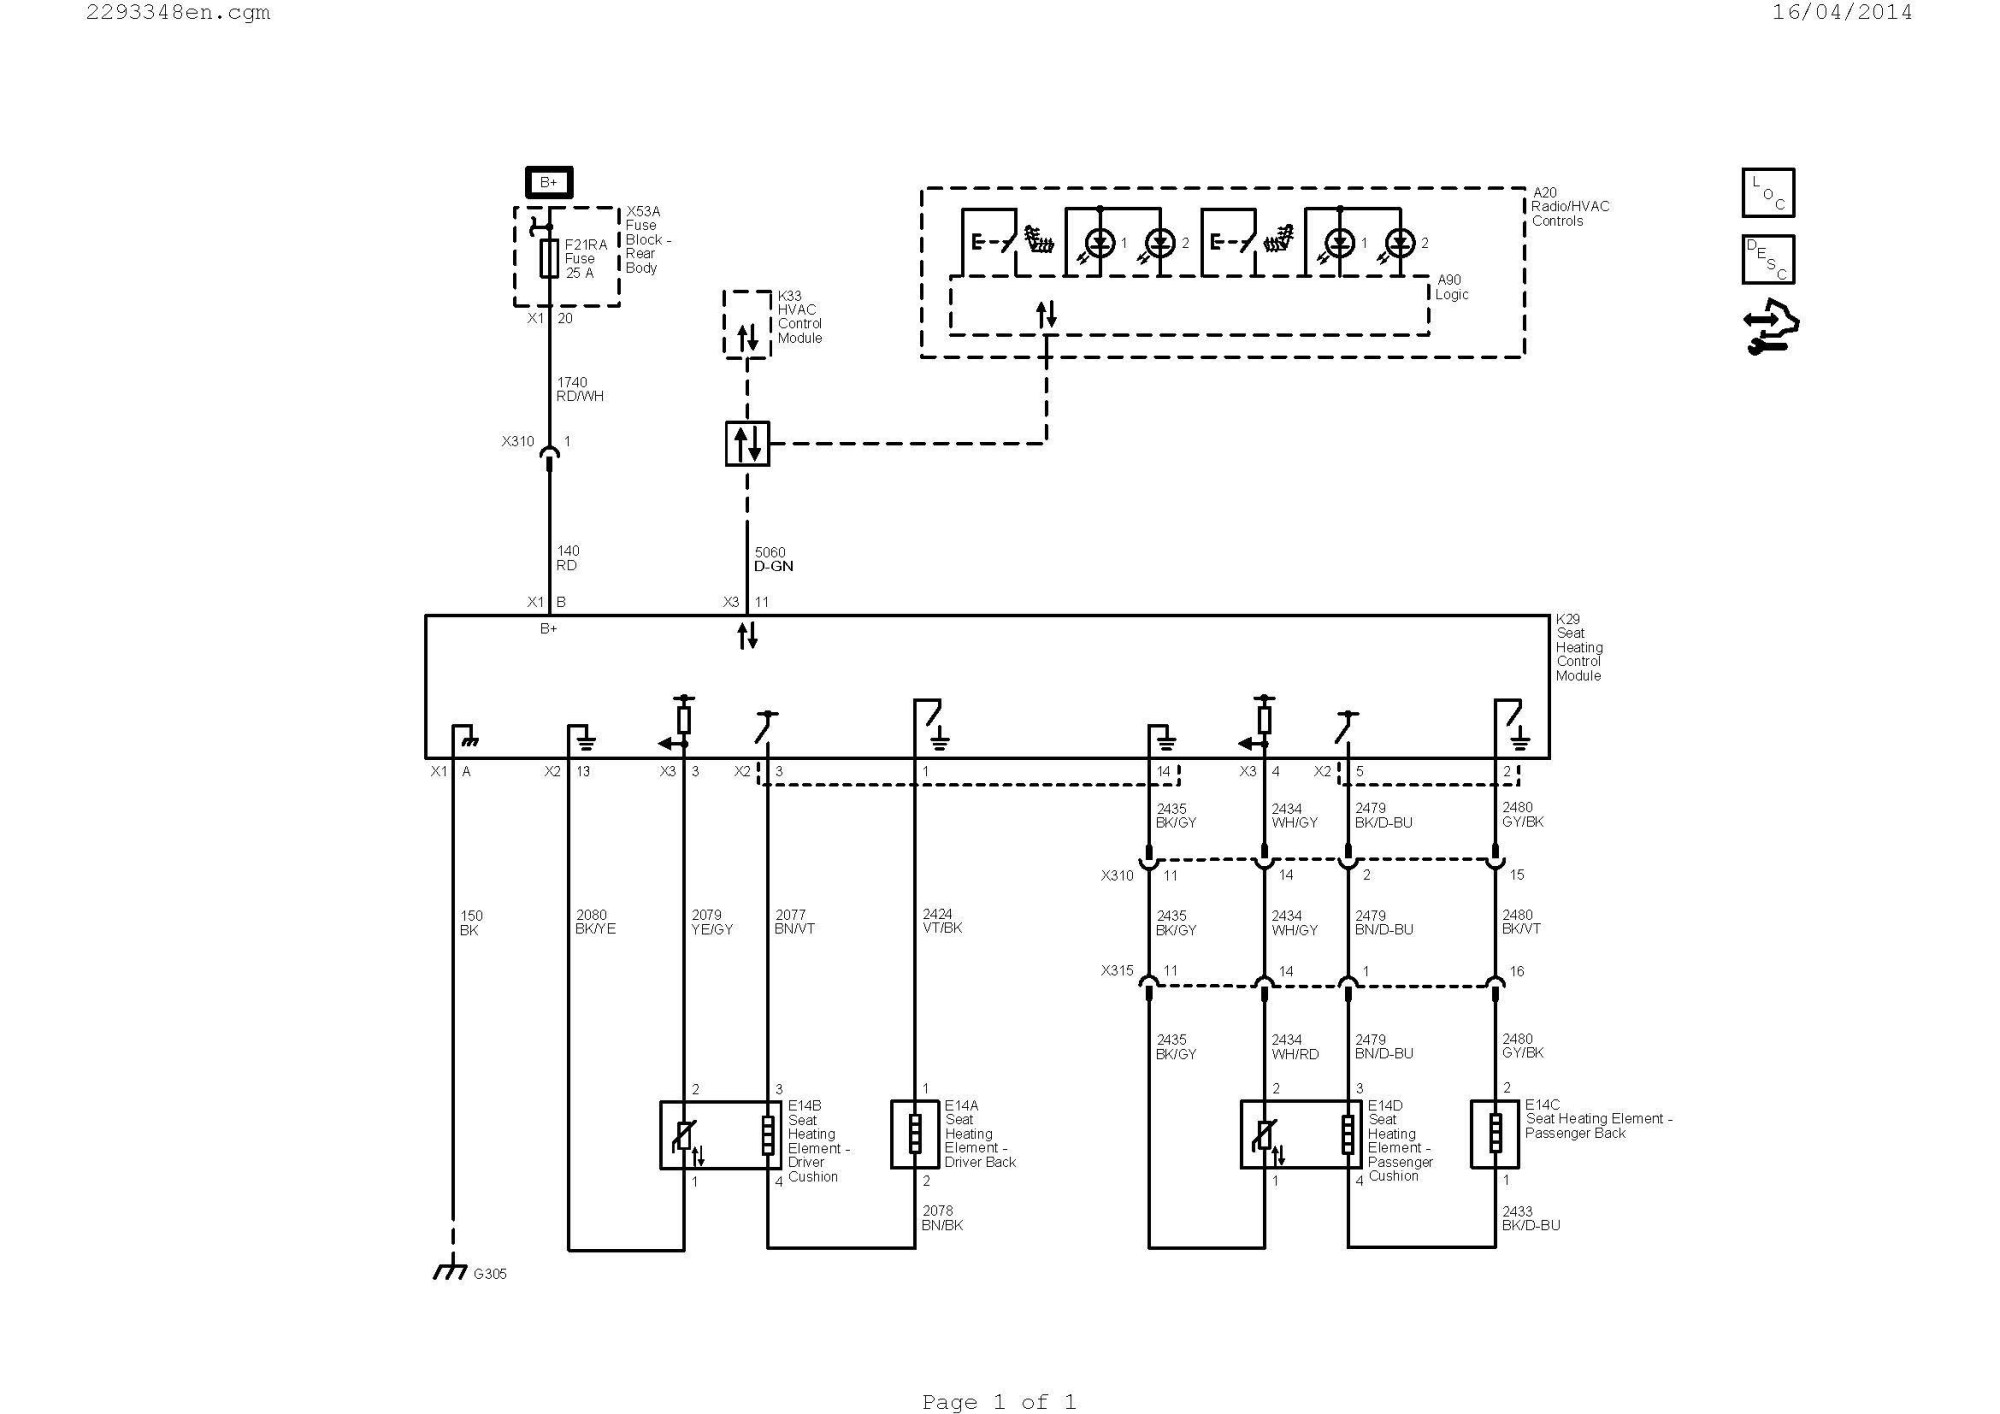 hight resolution of wb21x5243 wiring diagram cad wiring diagram symbols new mechanical engineering diagrams hvac free electrical wiring